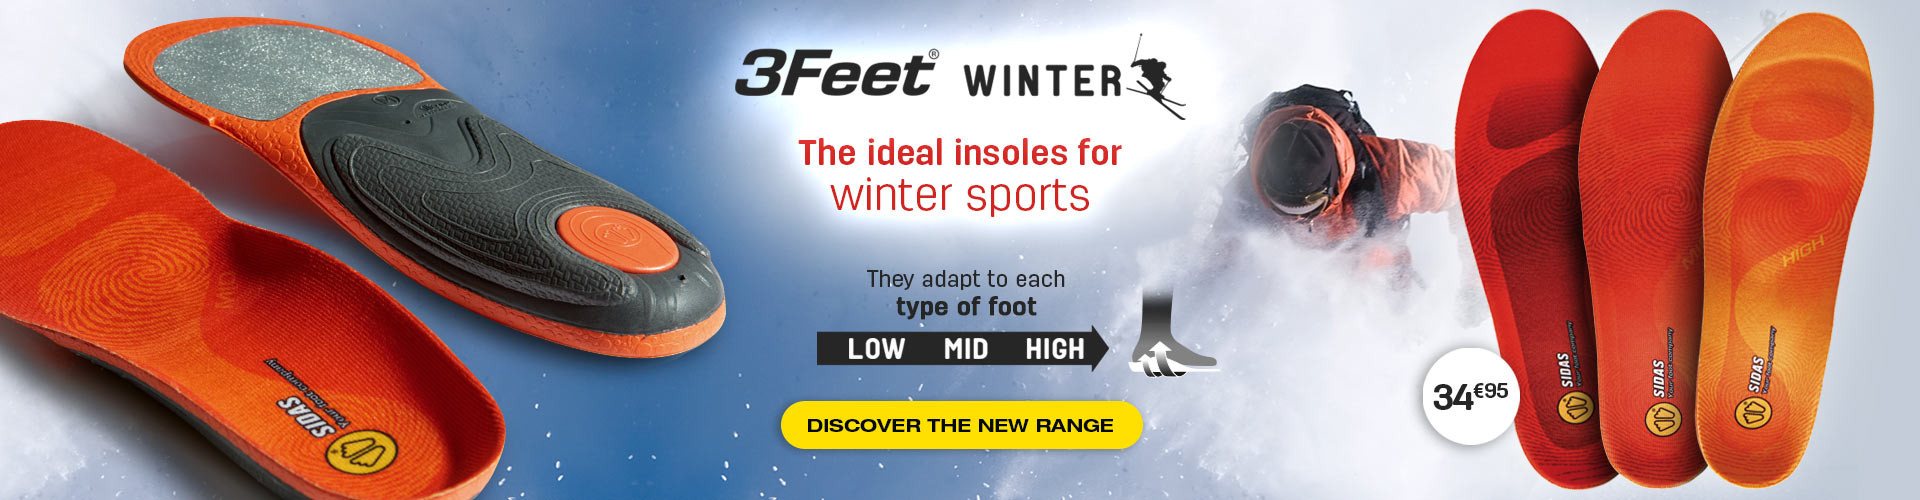 Discover our 3Feet® Winter, the best insoles for winter sports